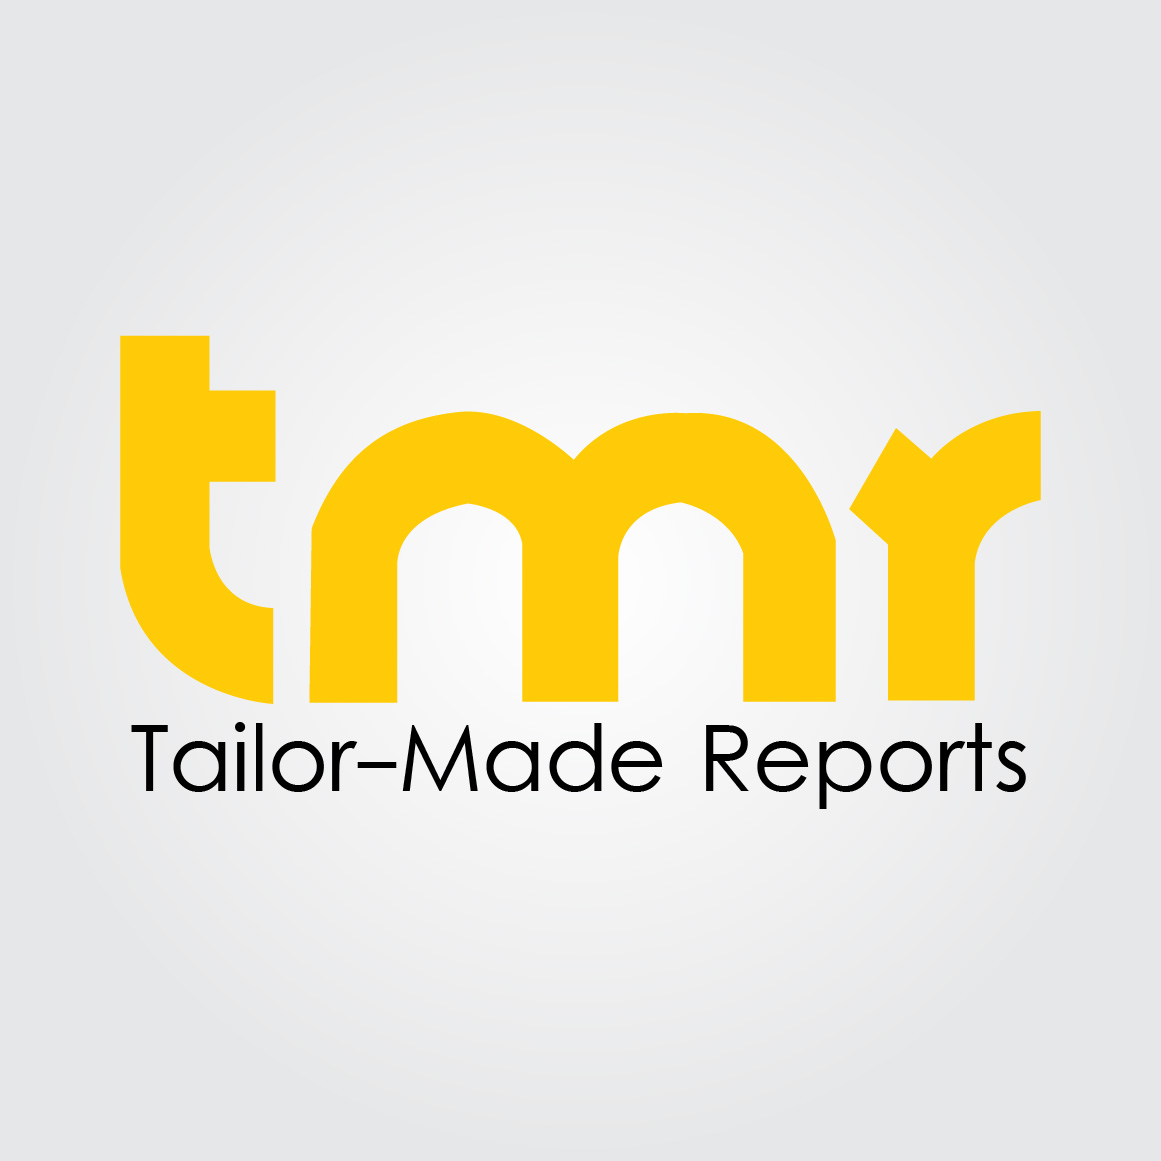 Body Worn Insect Repellent Market - Asia Pacific is expected to remain a popular region in the market | TMR Research Study